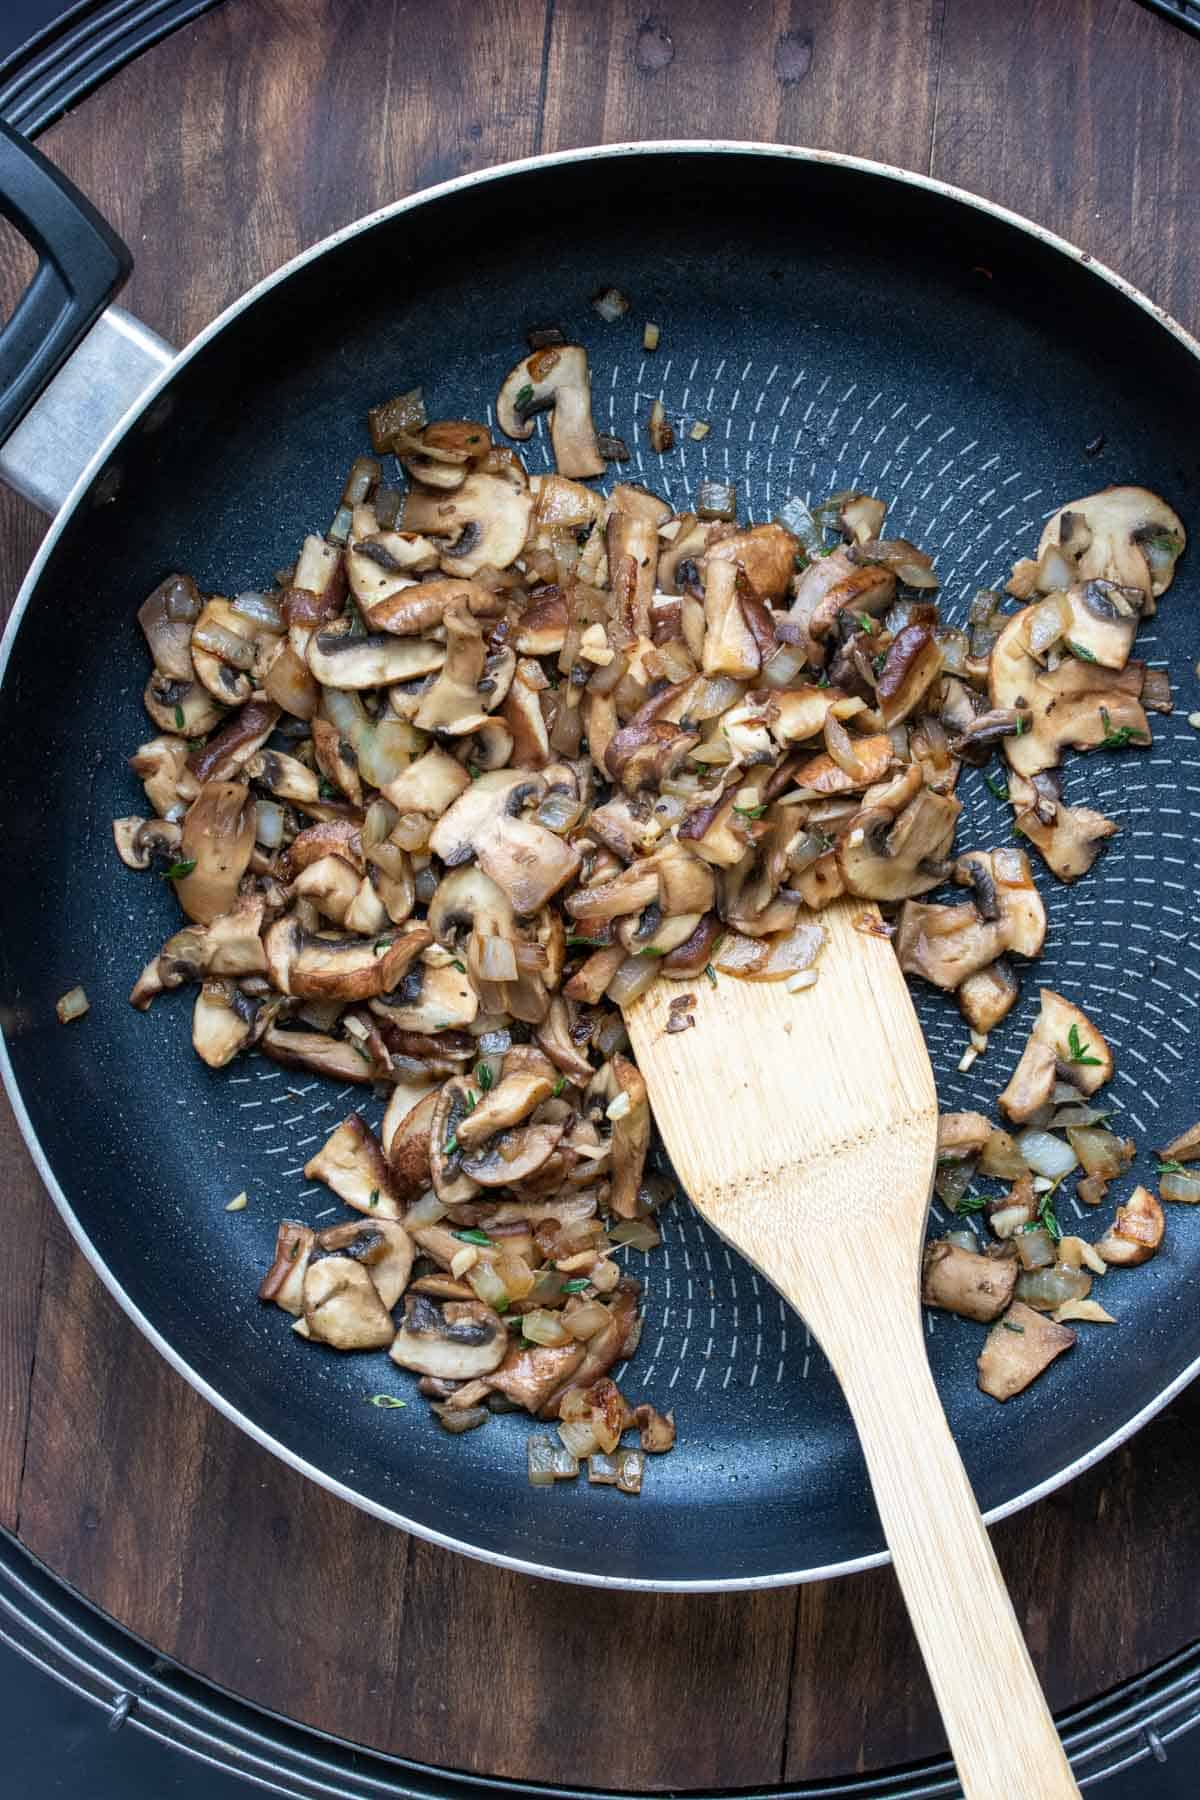 Wooden spatula mixing mushrooms in a pan to brown them